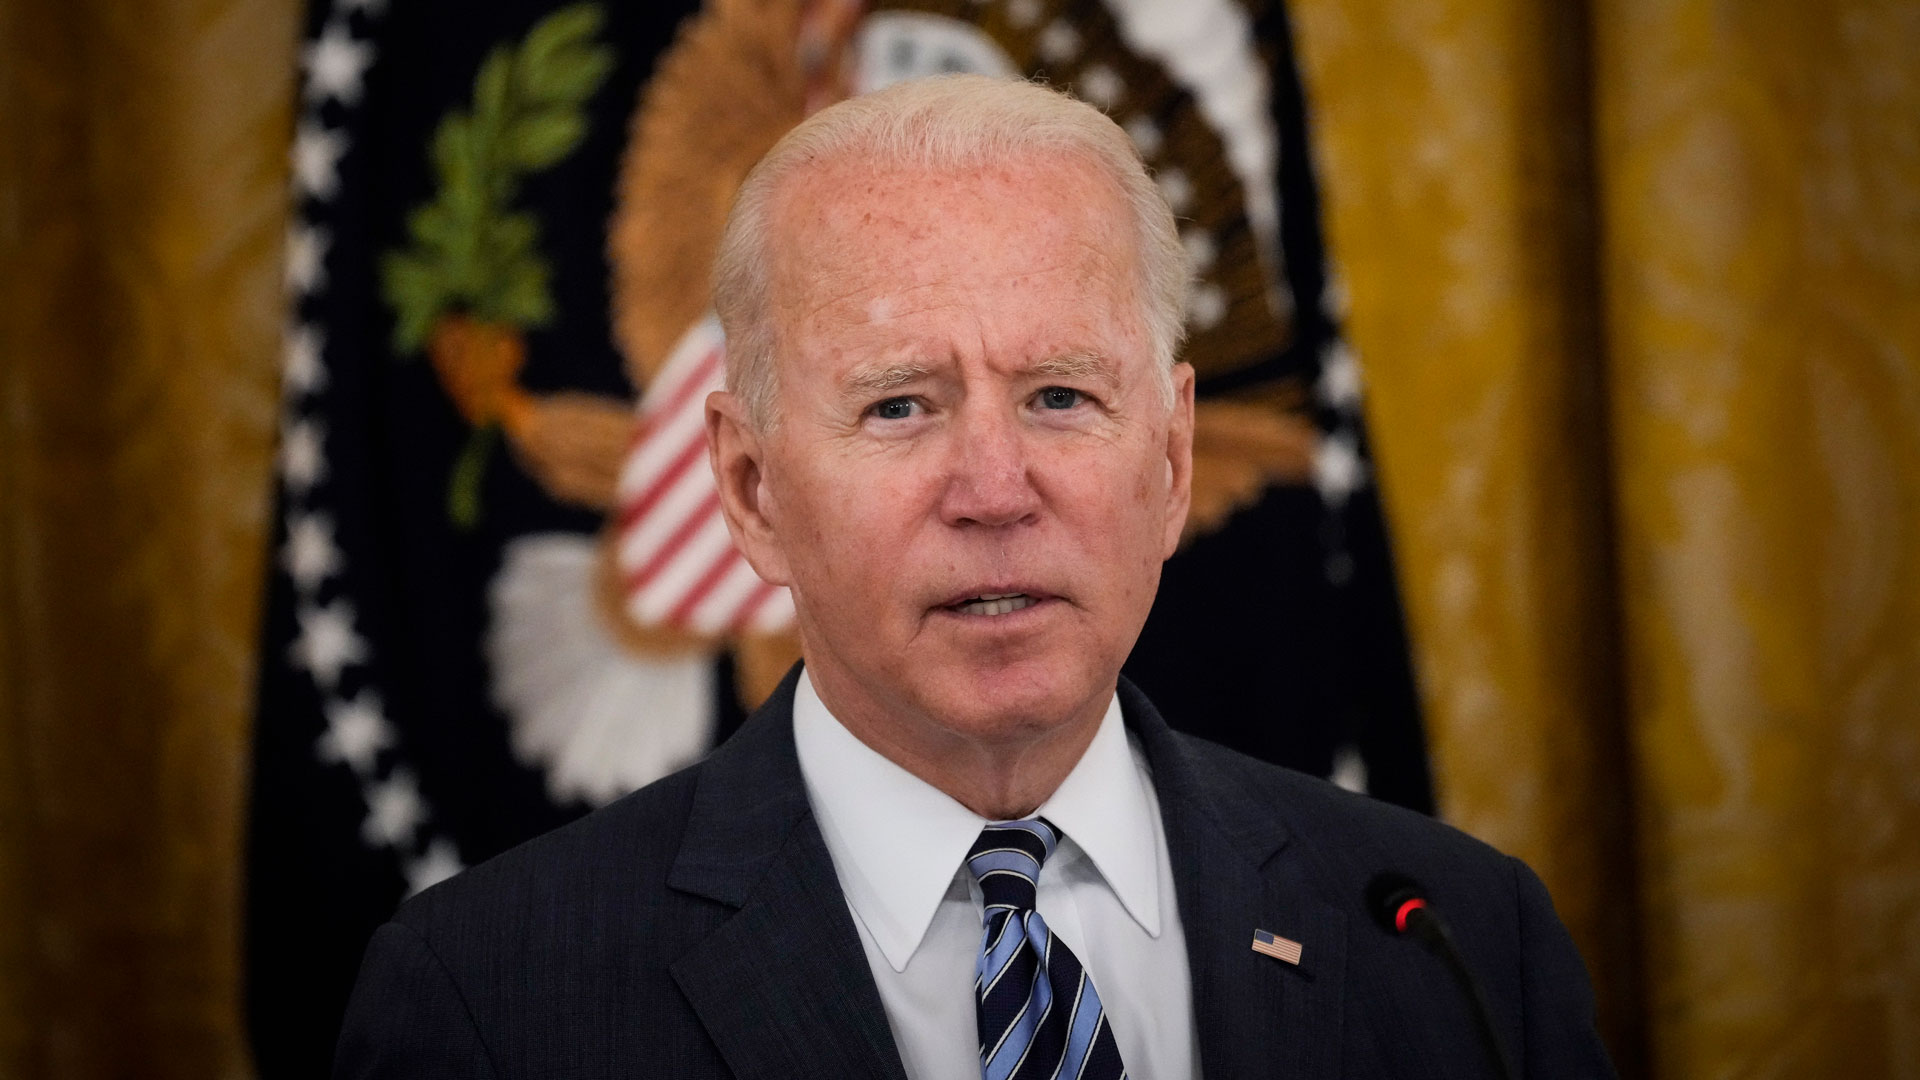 Watch live: Biden gives update following two explosions outside Kabul airport